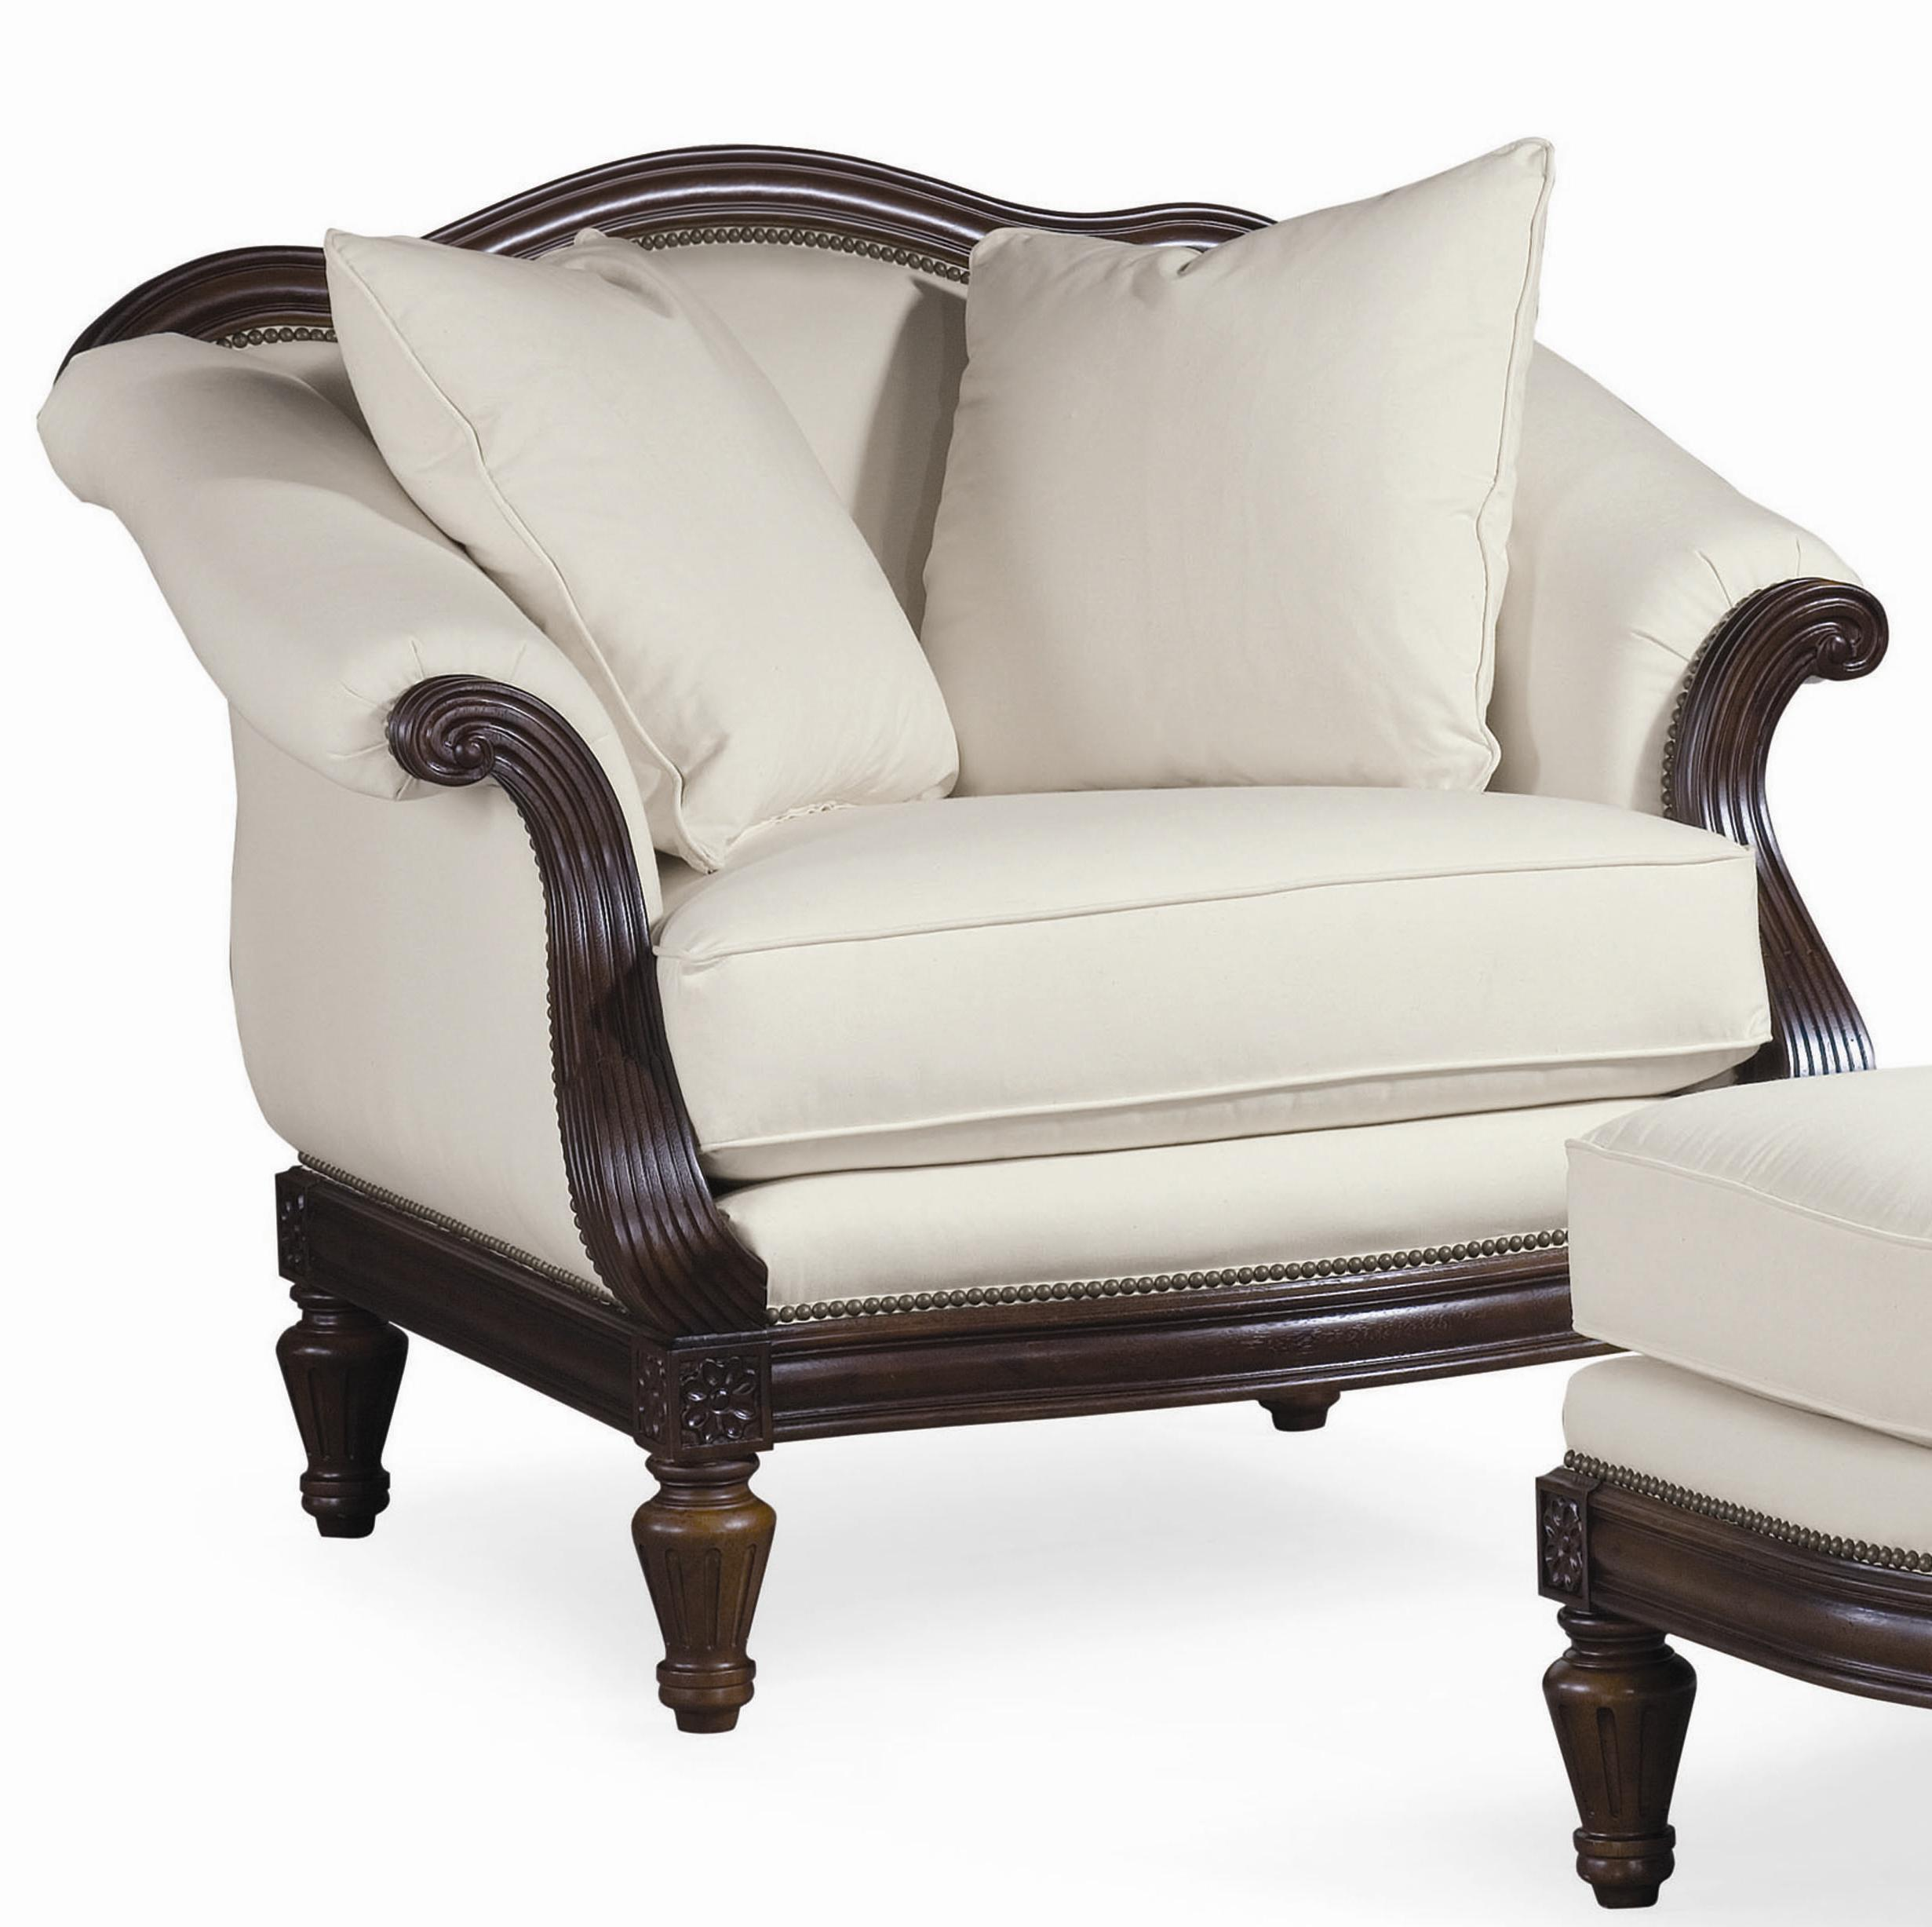 Thomasville® Sorrento Classic Arm Chair With Exposed Wood Accents   Stuckey  Furniture   Upholstered Chairs